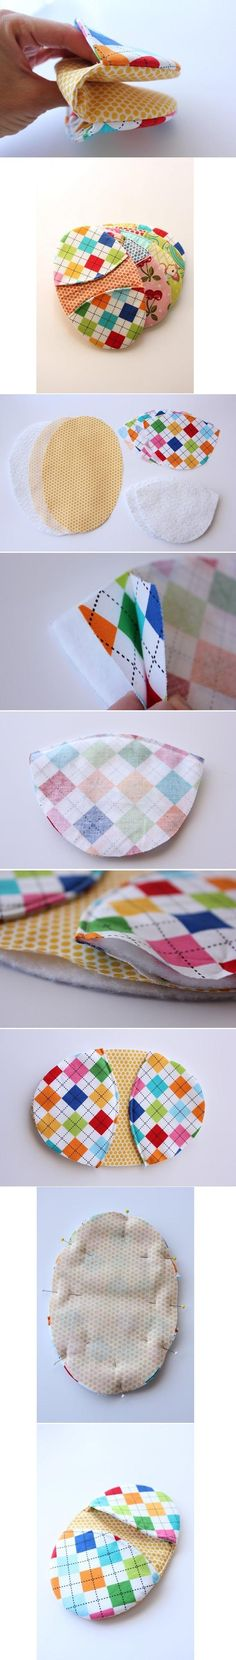 Smart Pot Holder   #DIY #PROJECTS #DIYCRAFTS #SEWING #HOWTO #SEW #KITCHENPROJECTS #KITCHEN #HOLDER #POT